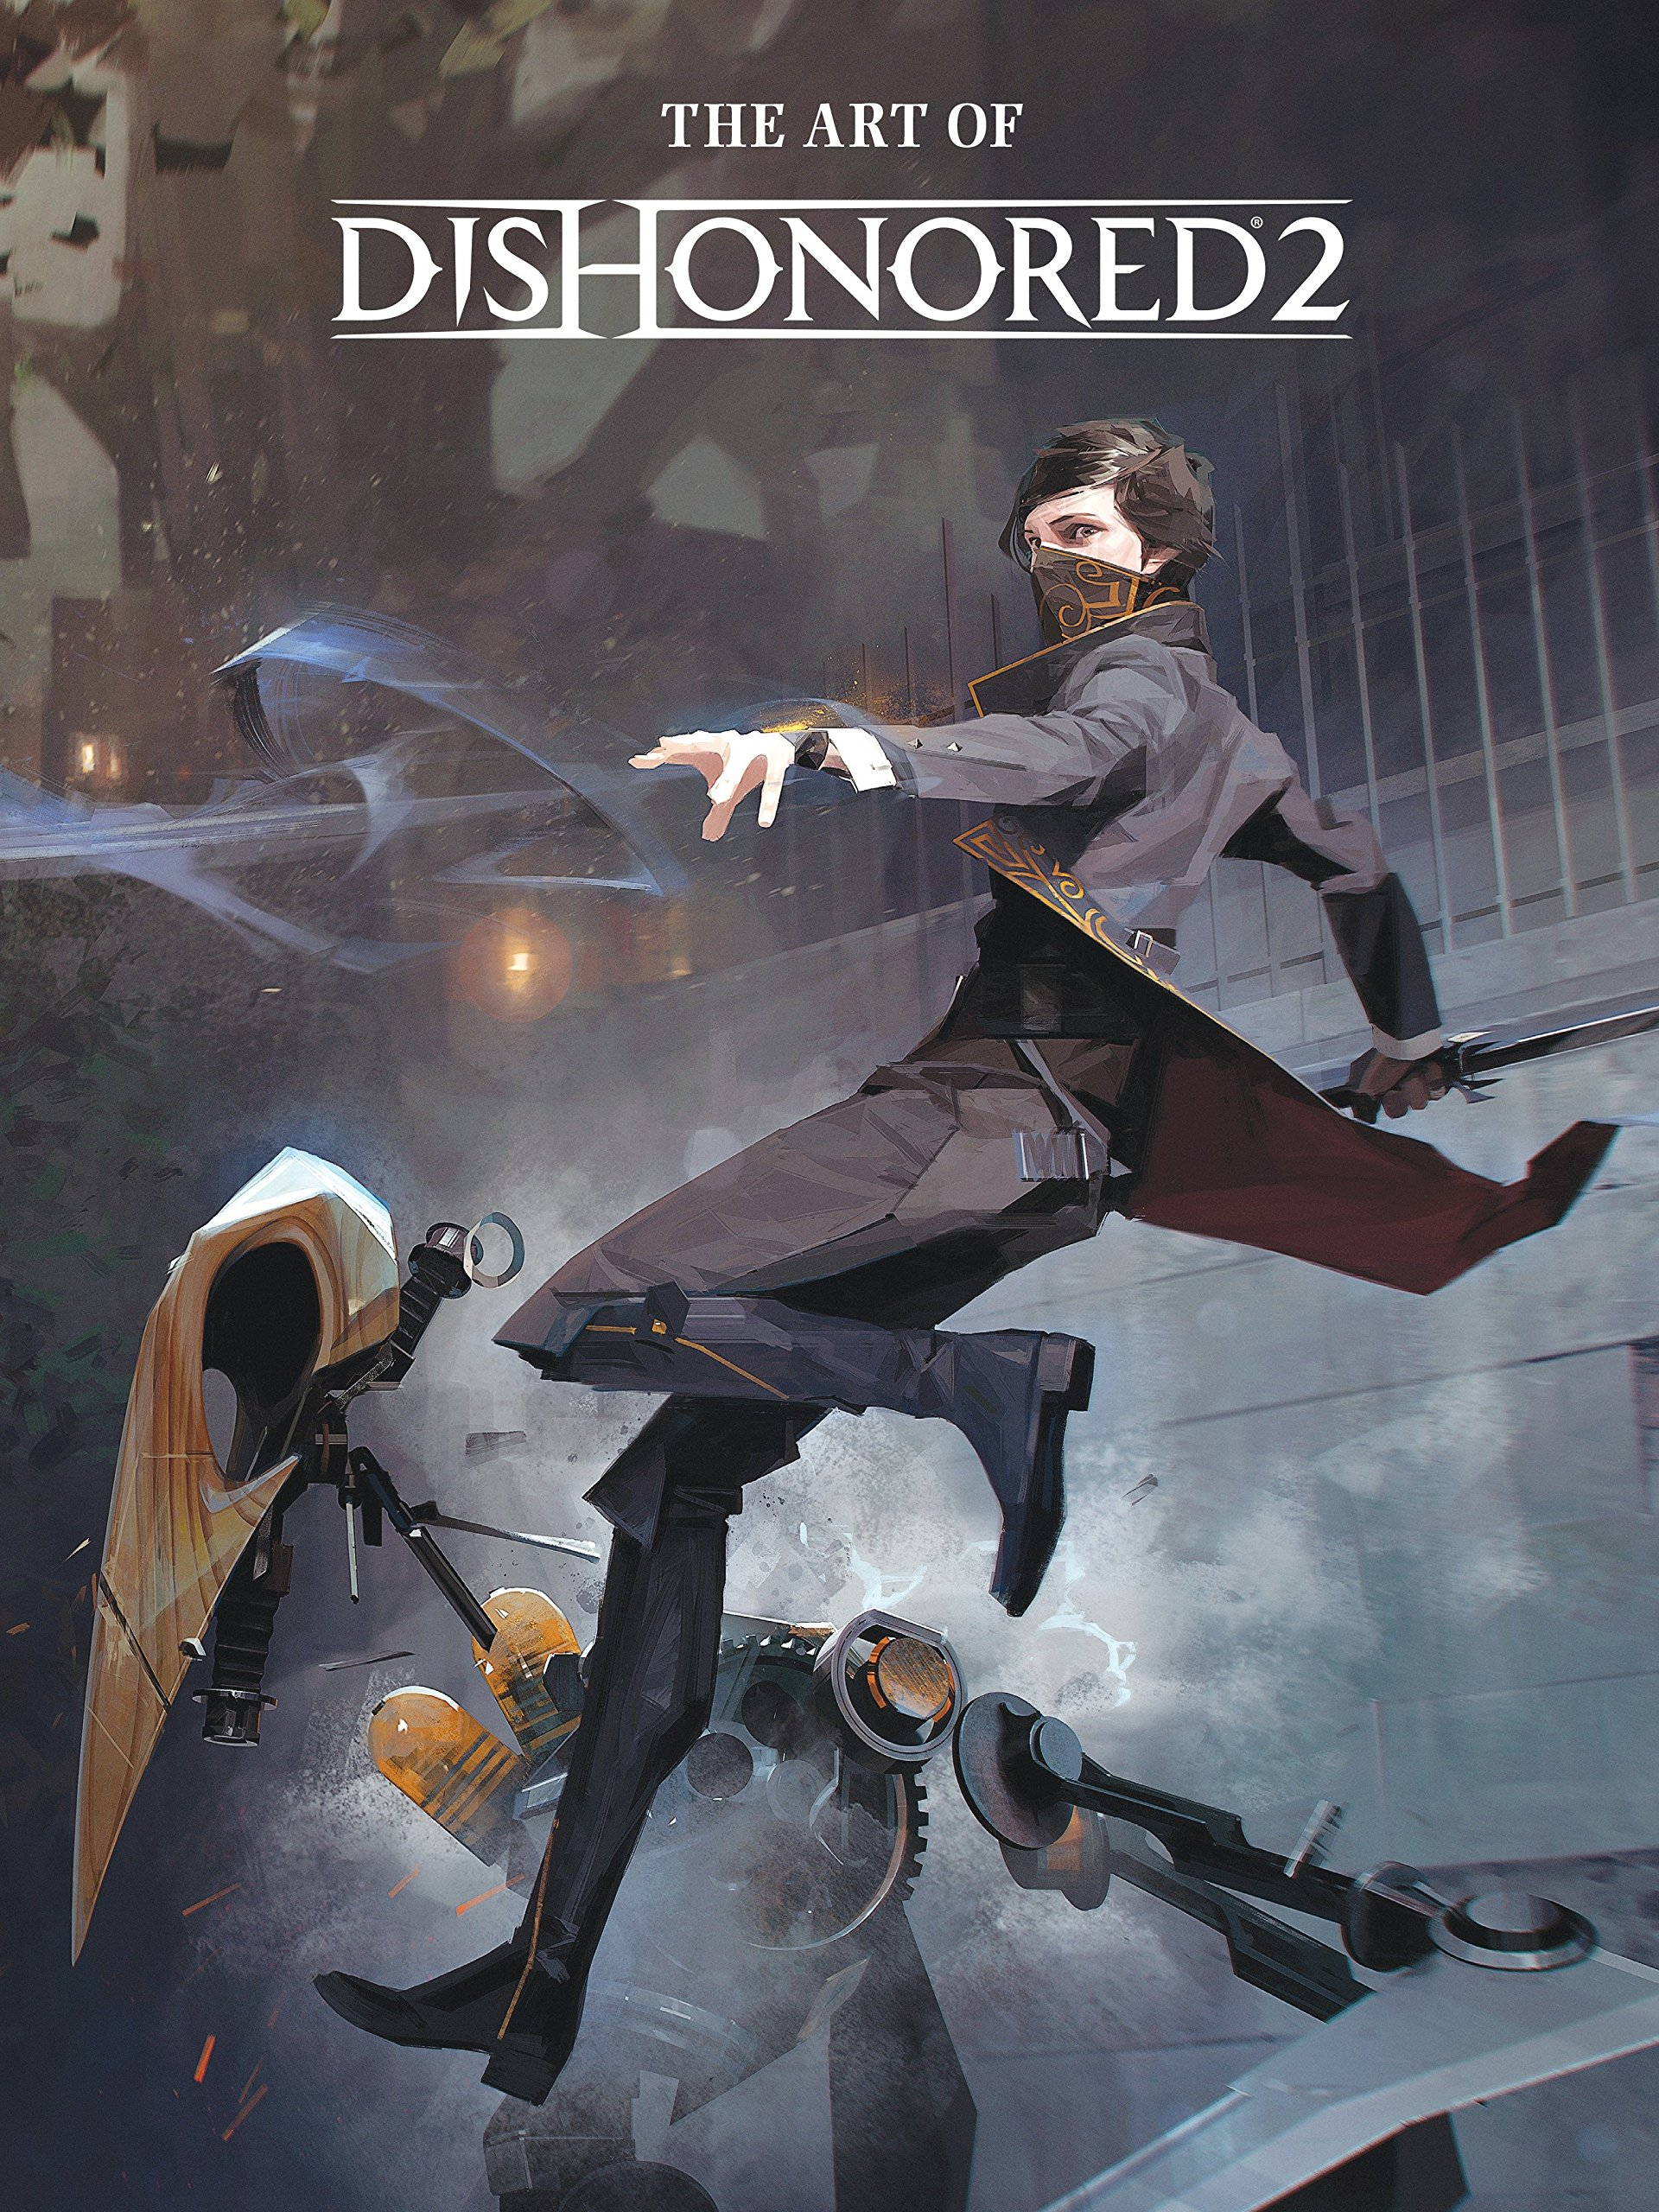 The Art of Dishonored 2 by Dark Horse Books